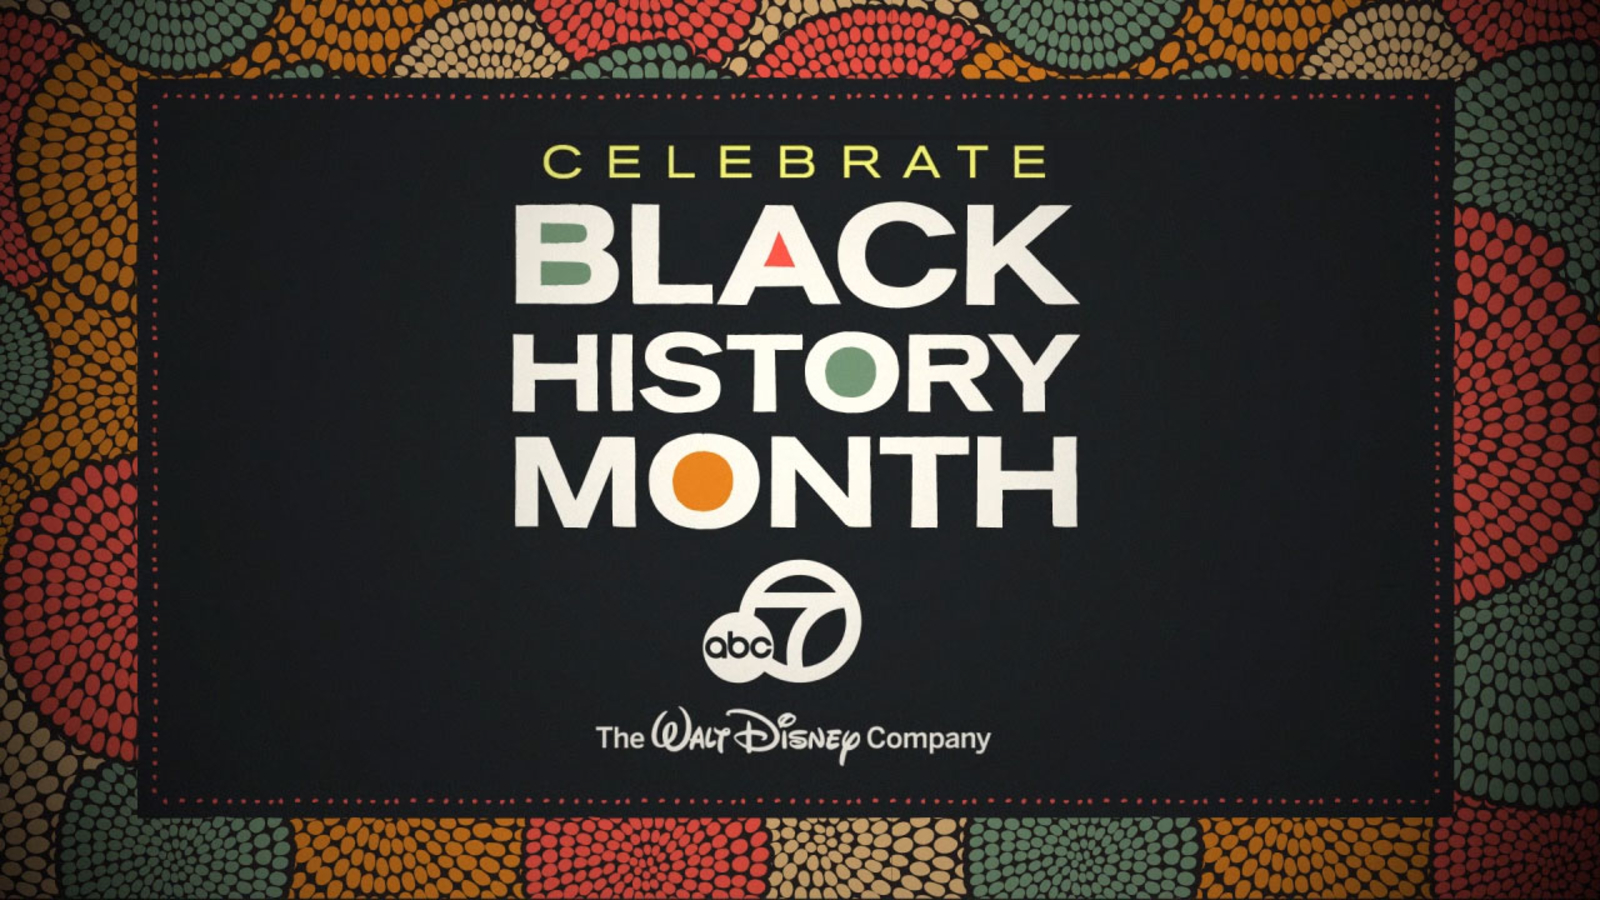 Black History Month Events In Southern California Abc7 Los Angeles